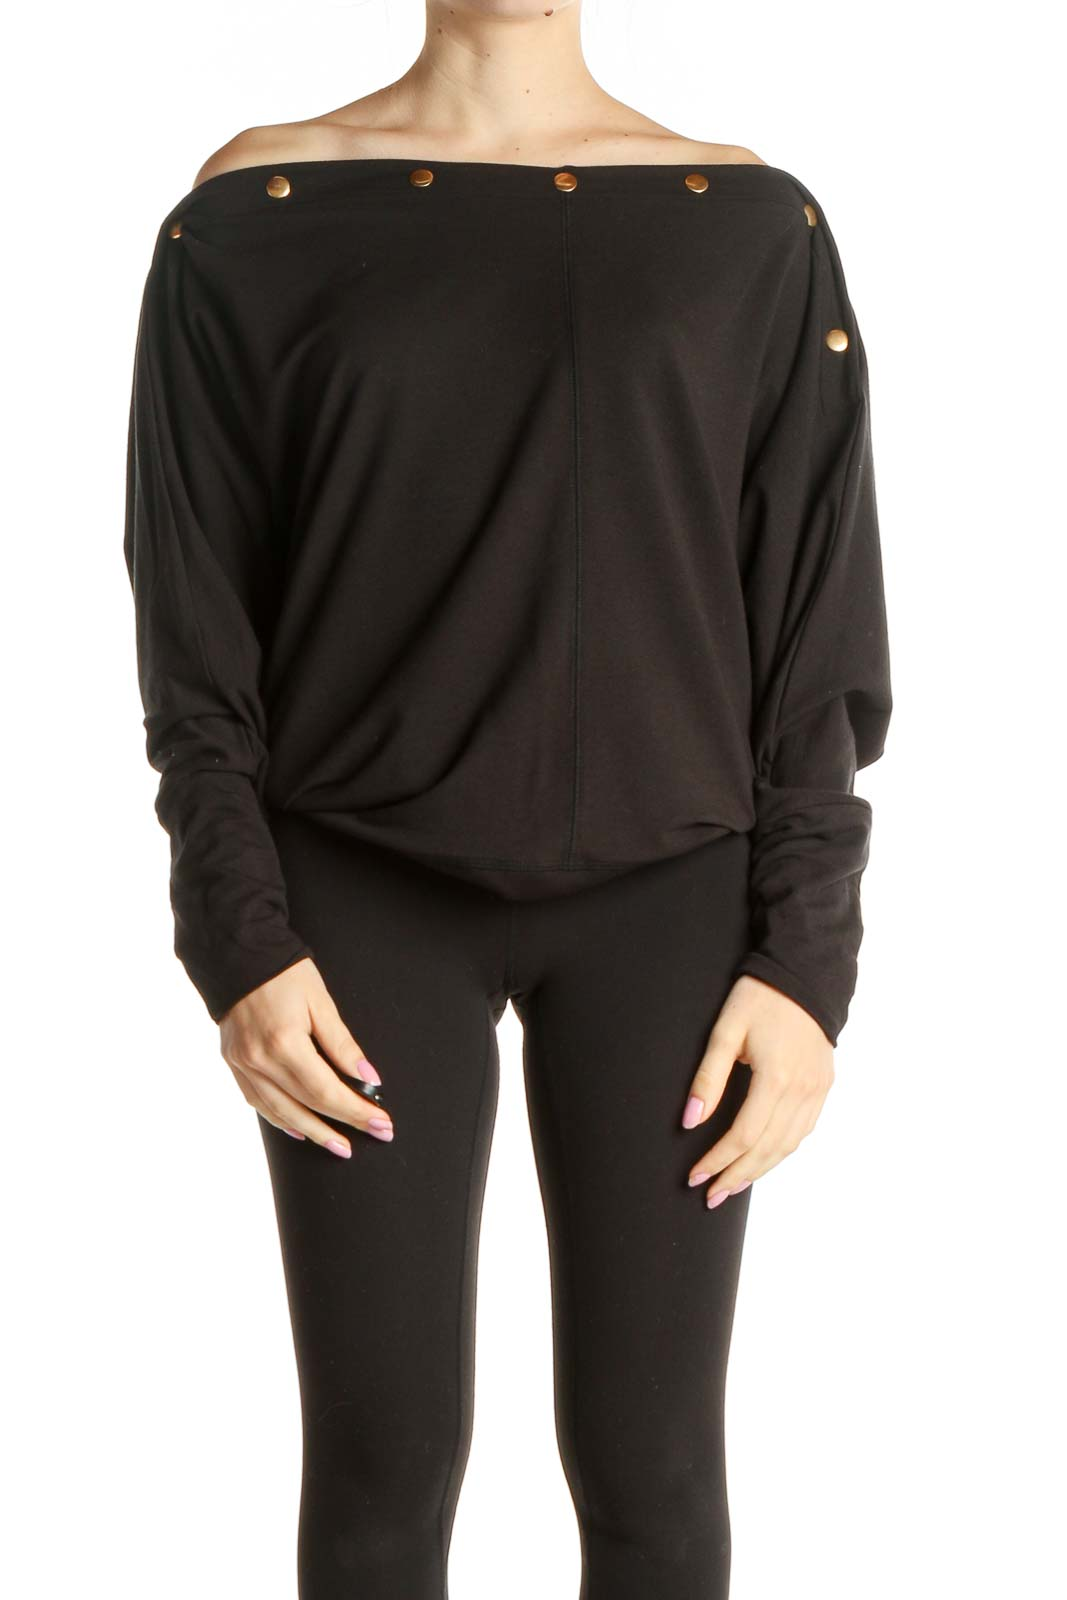 Black Solid Chic Shirt Front